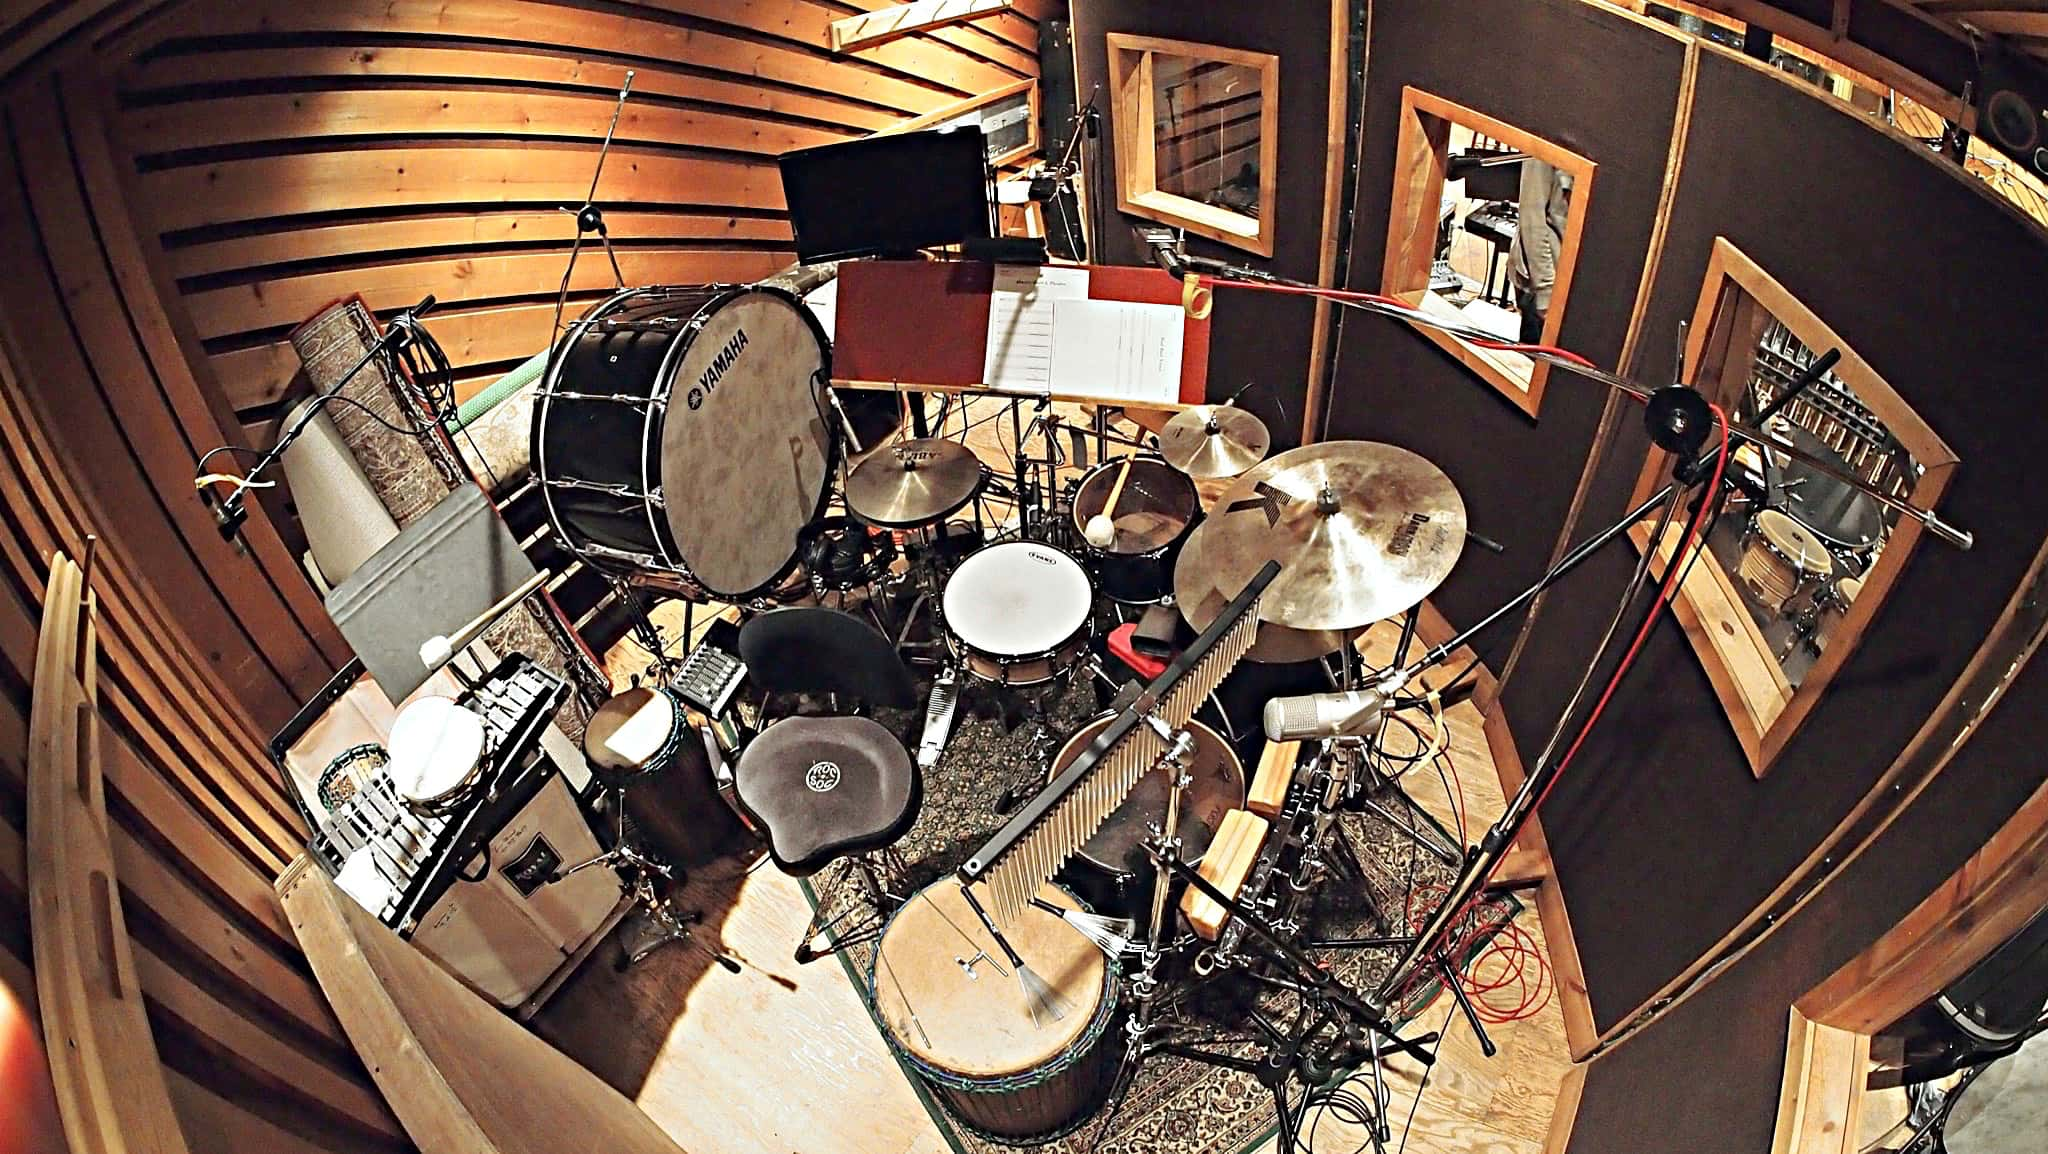 Paul Pizzuti's drum set setup for the 2014 recording session of NBC's Peter Pan Live at Avatar Studios in New York City.